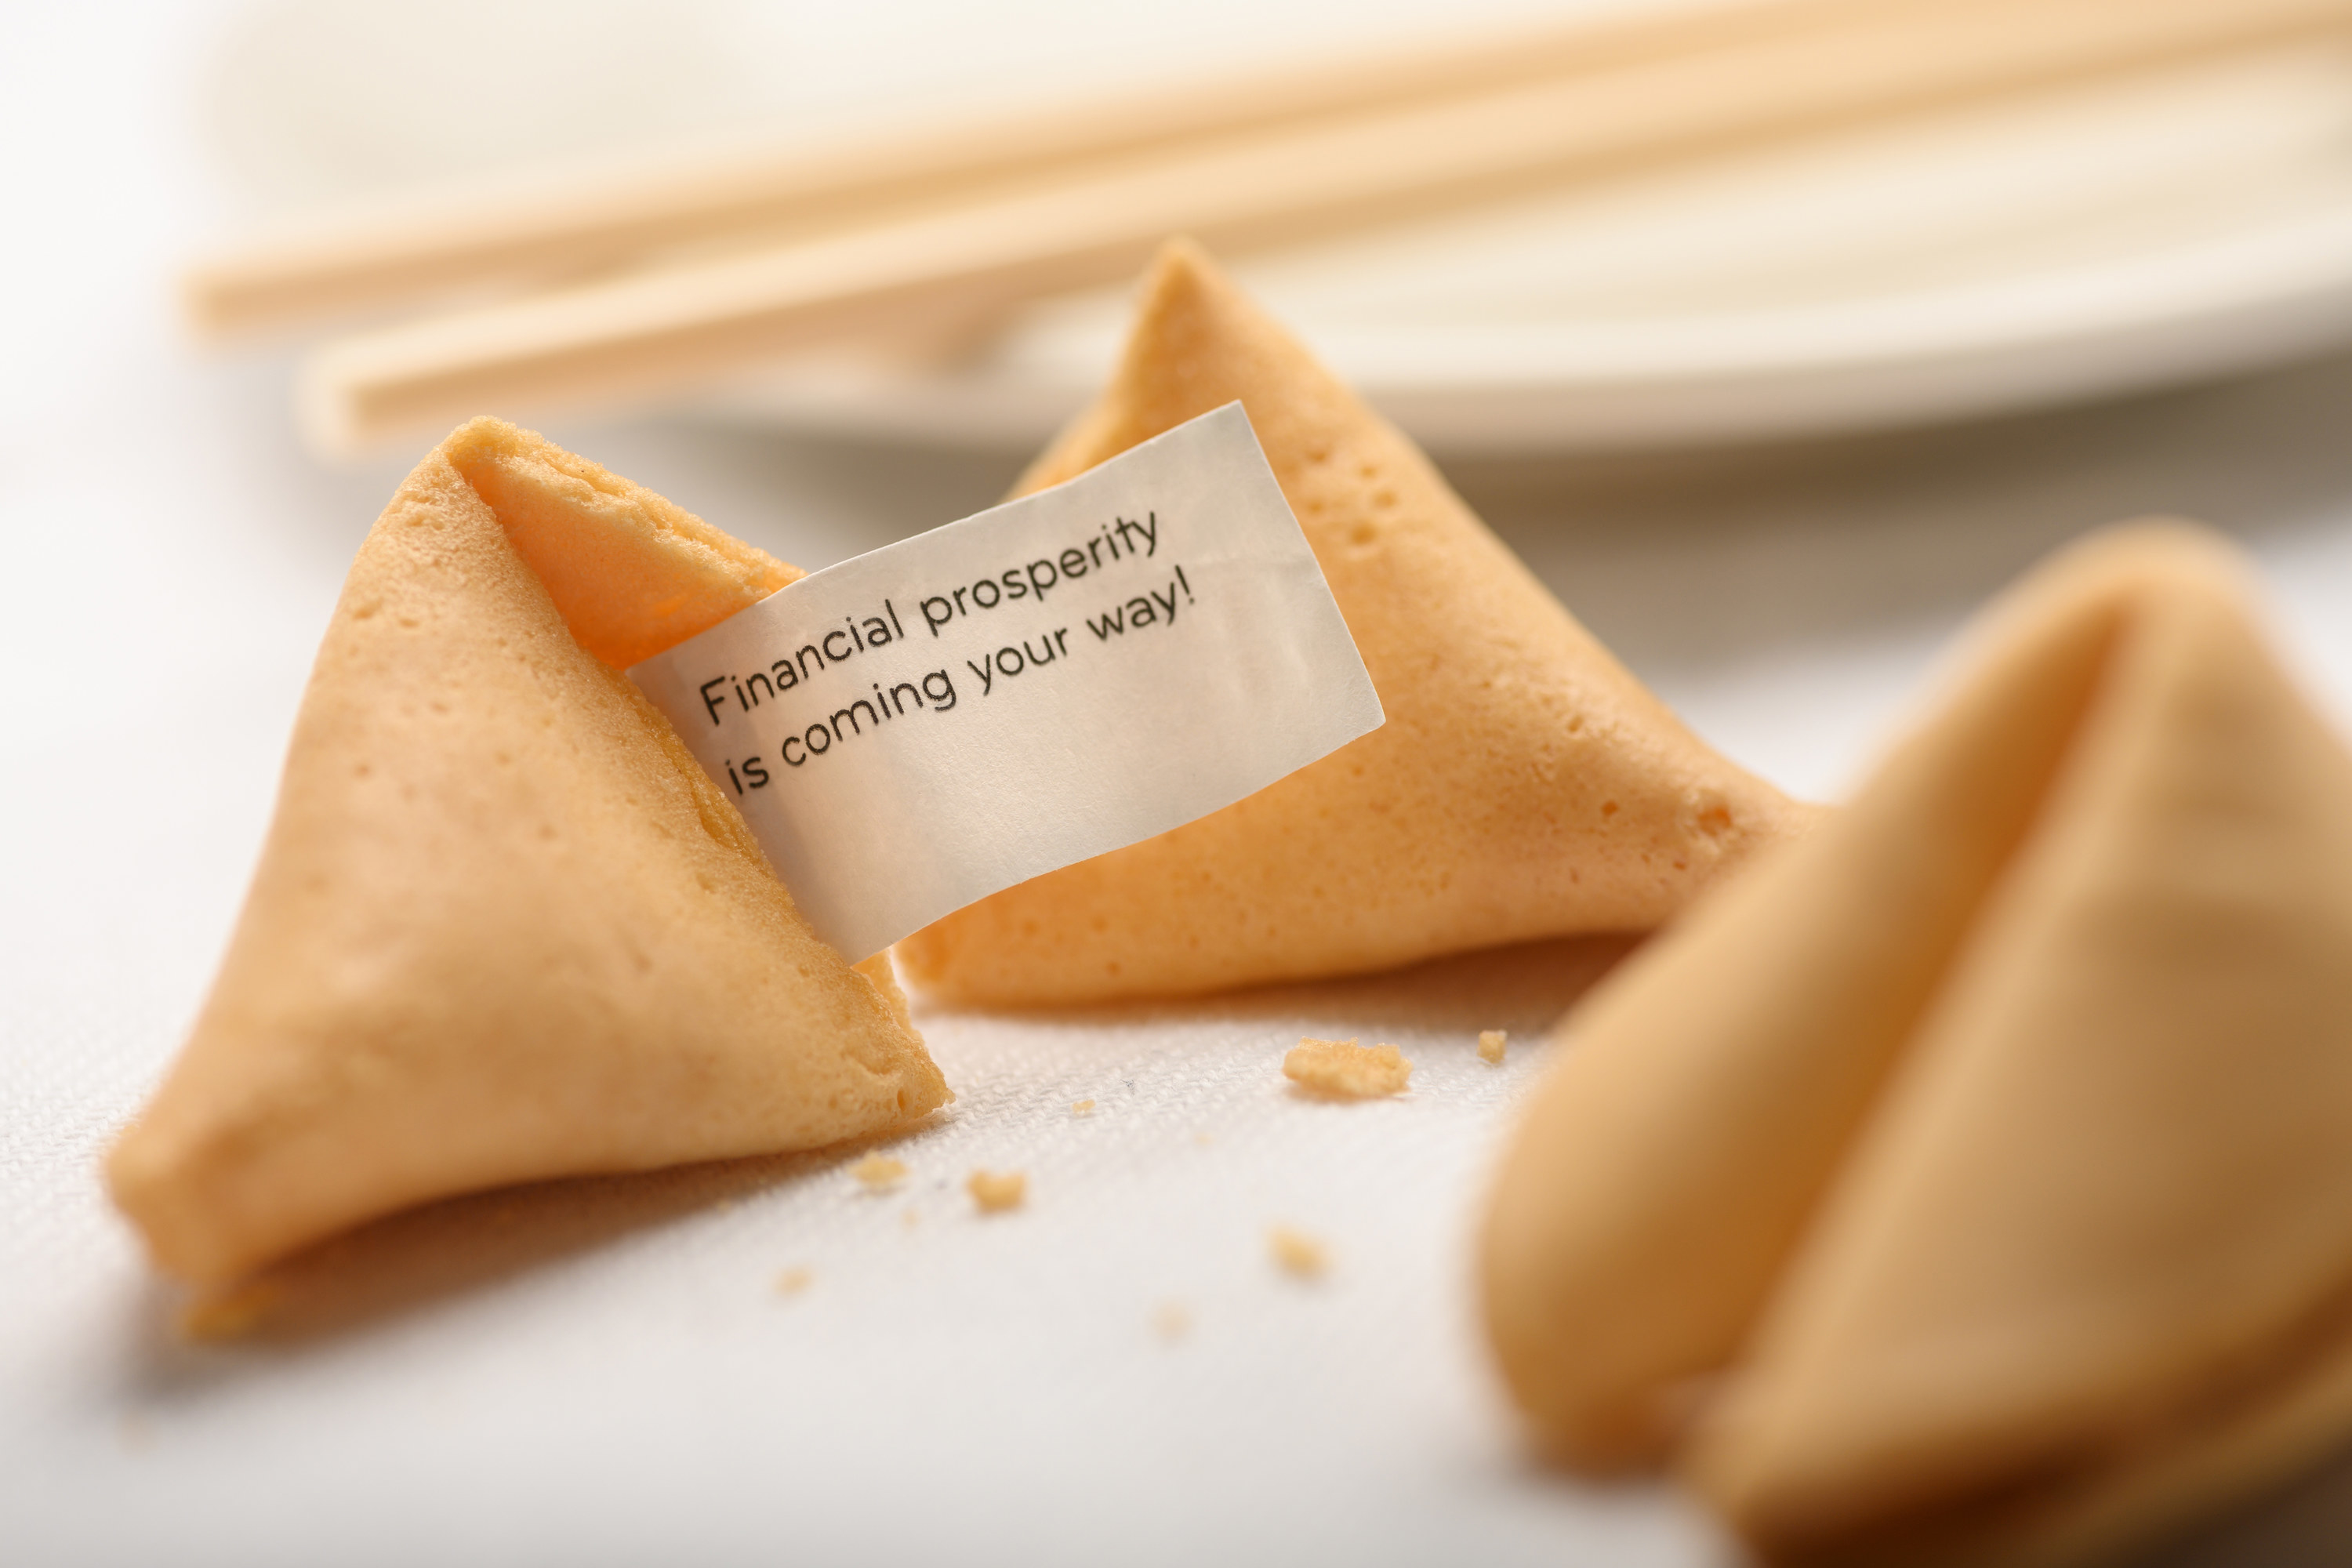 A broken fortune cookie with fortune visible